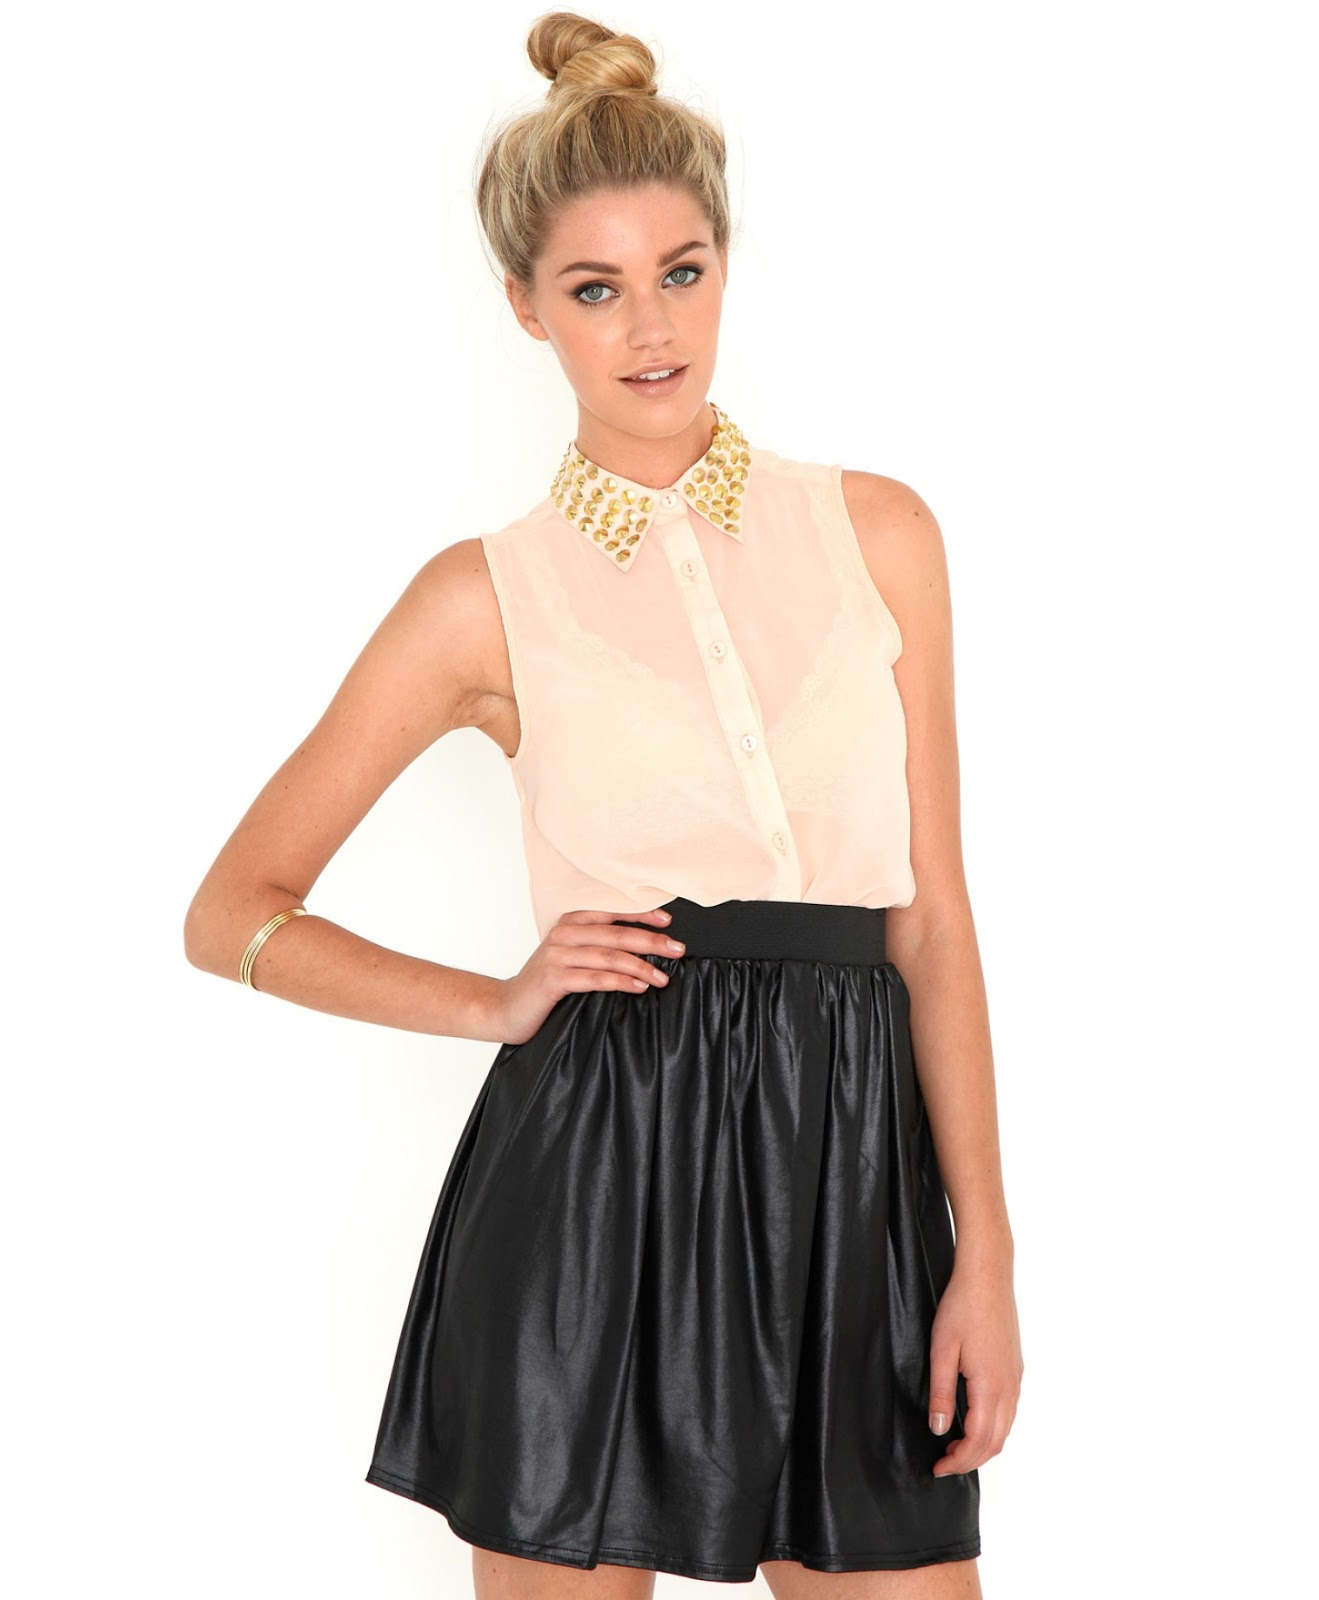 creative semi formal outfit skirt